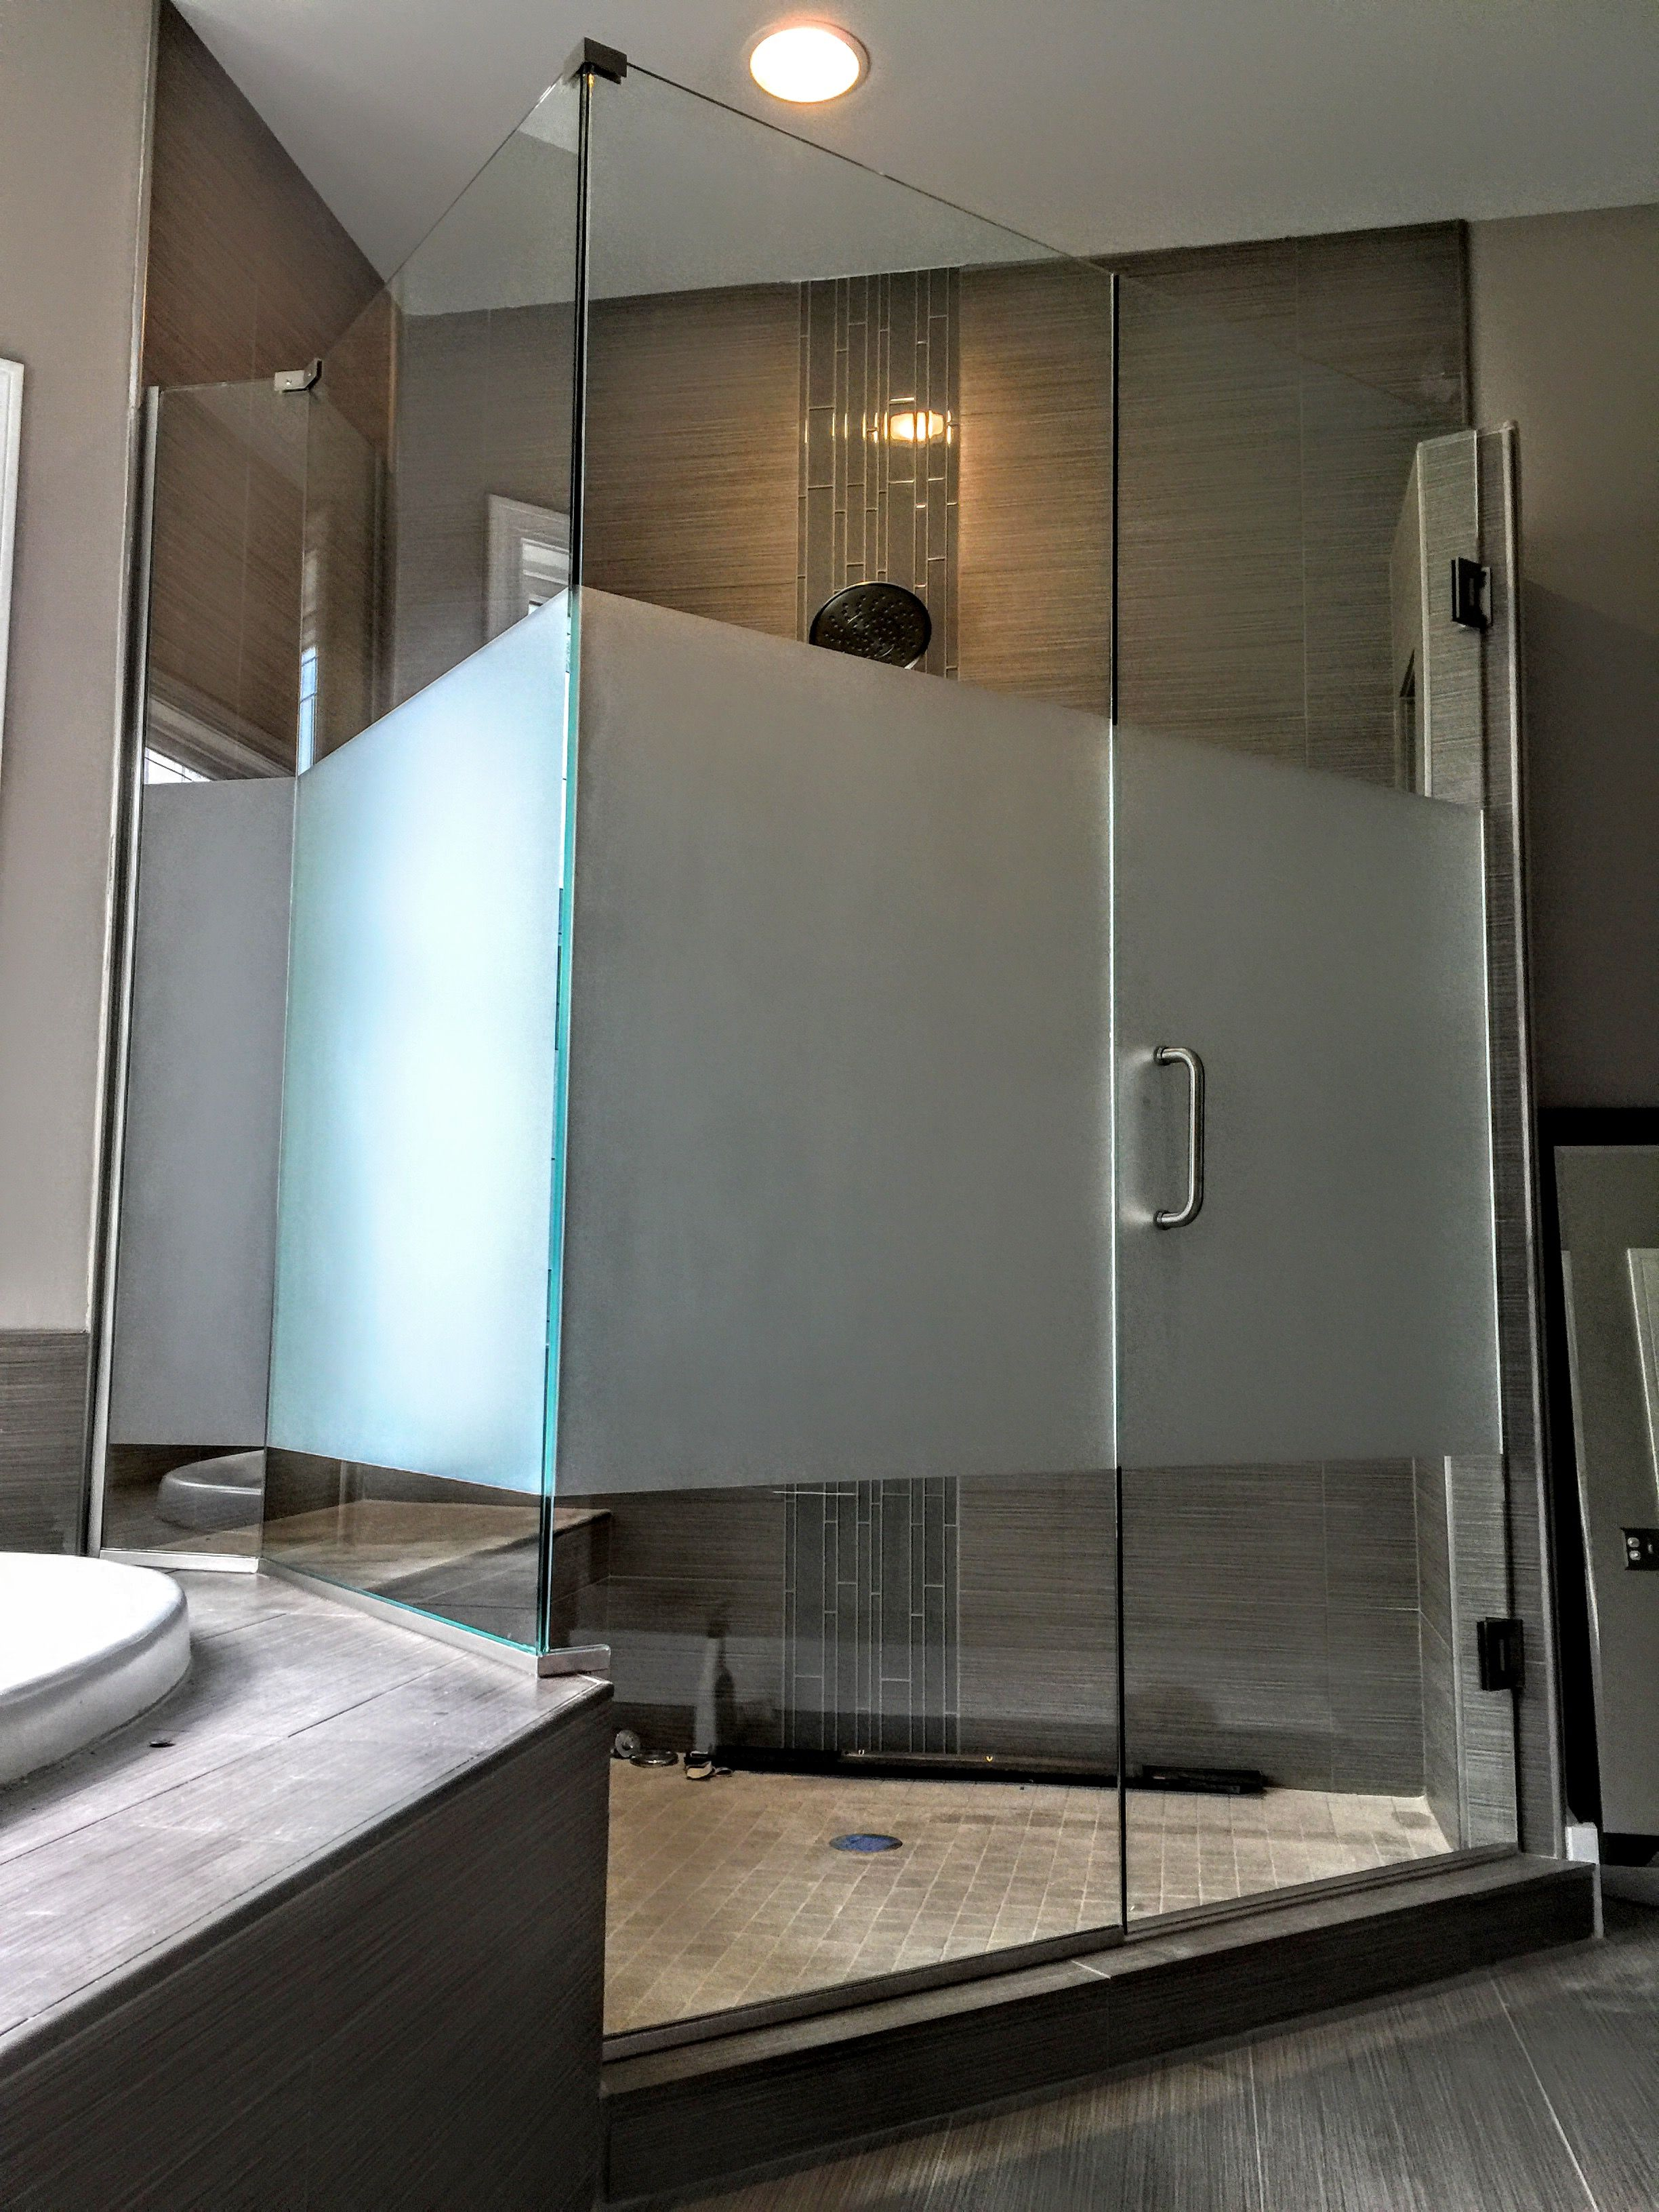 Etched Shower Doors etched glass shower doors, give your shower a little privacy with